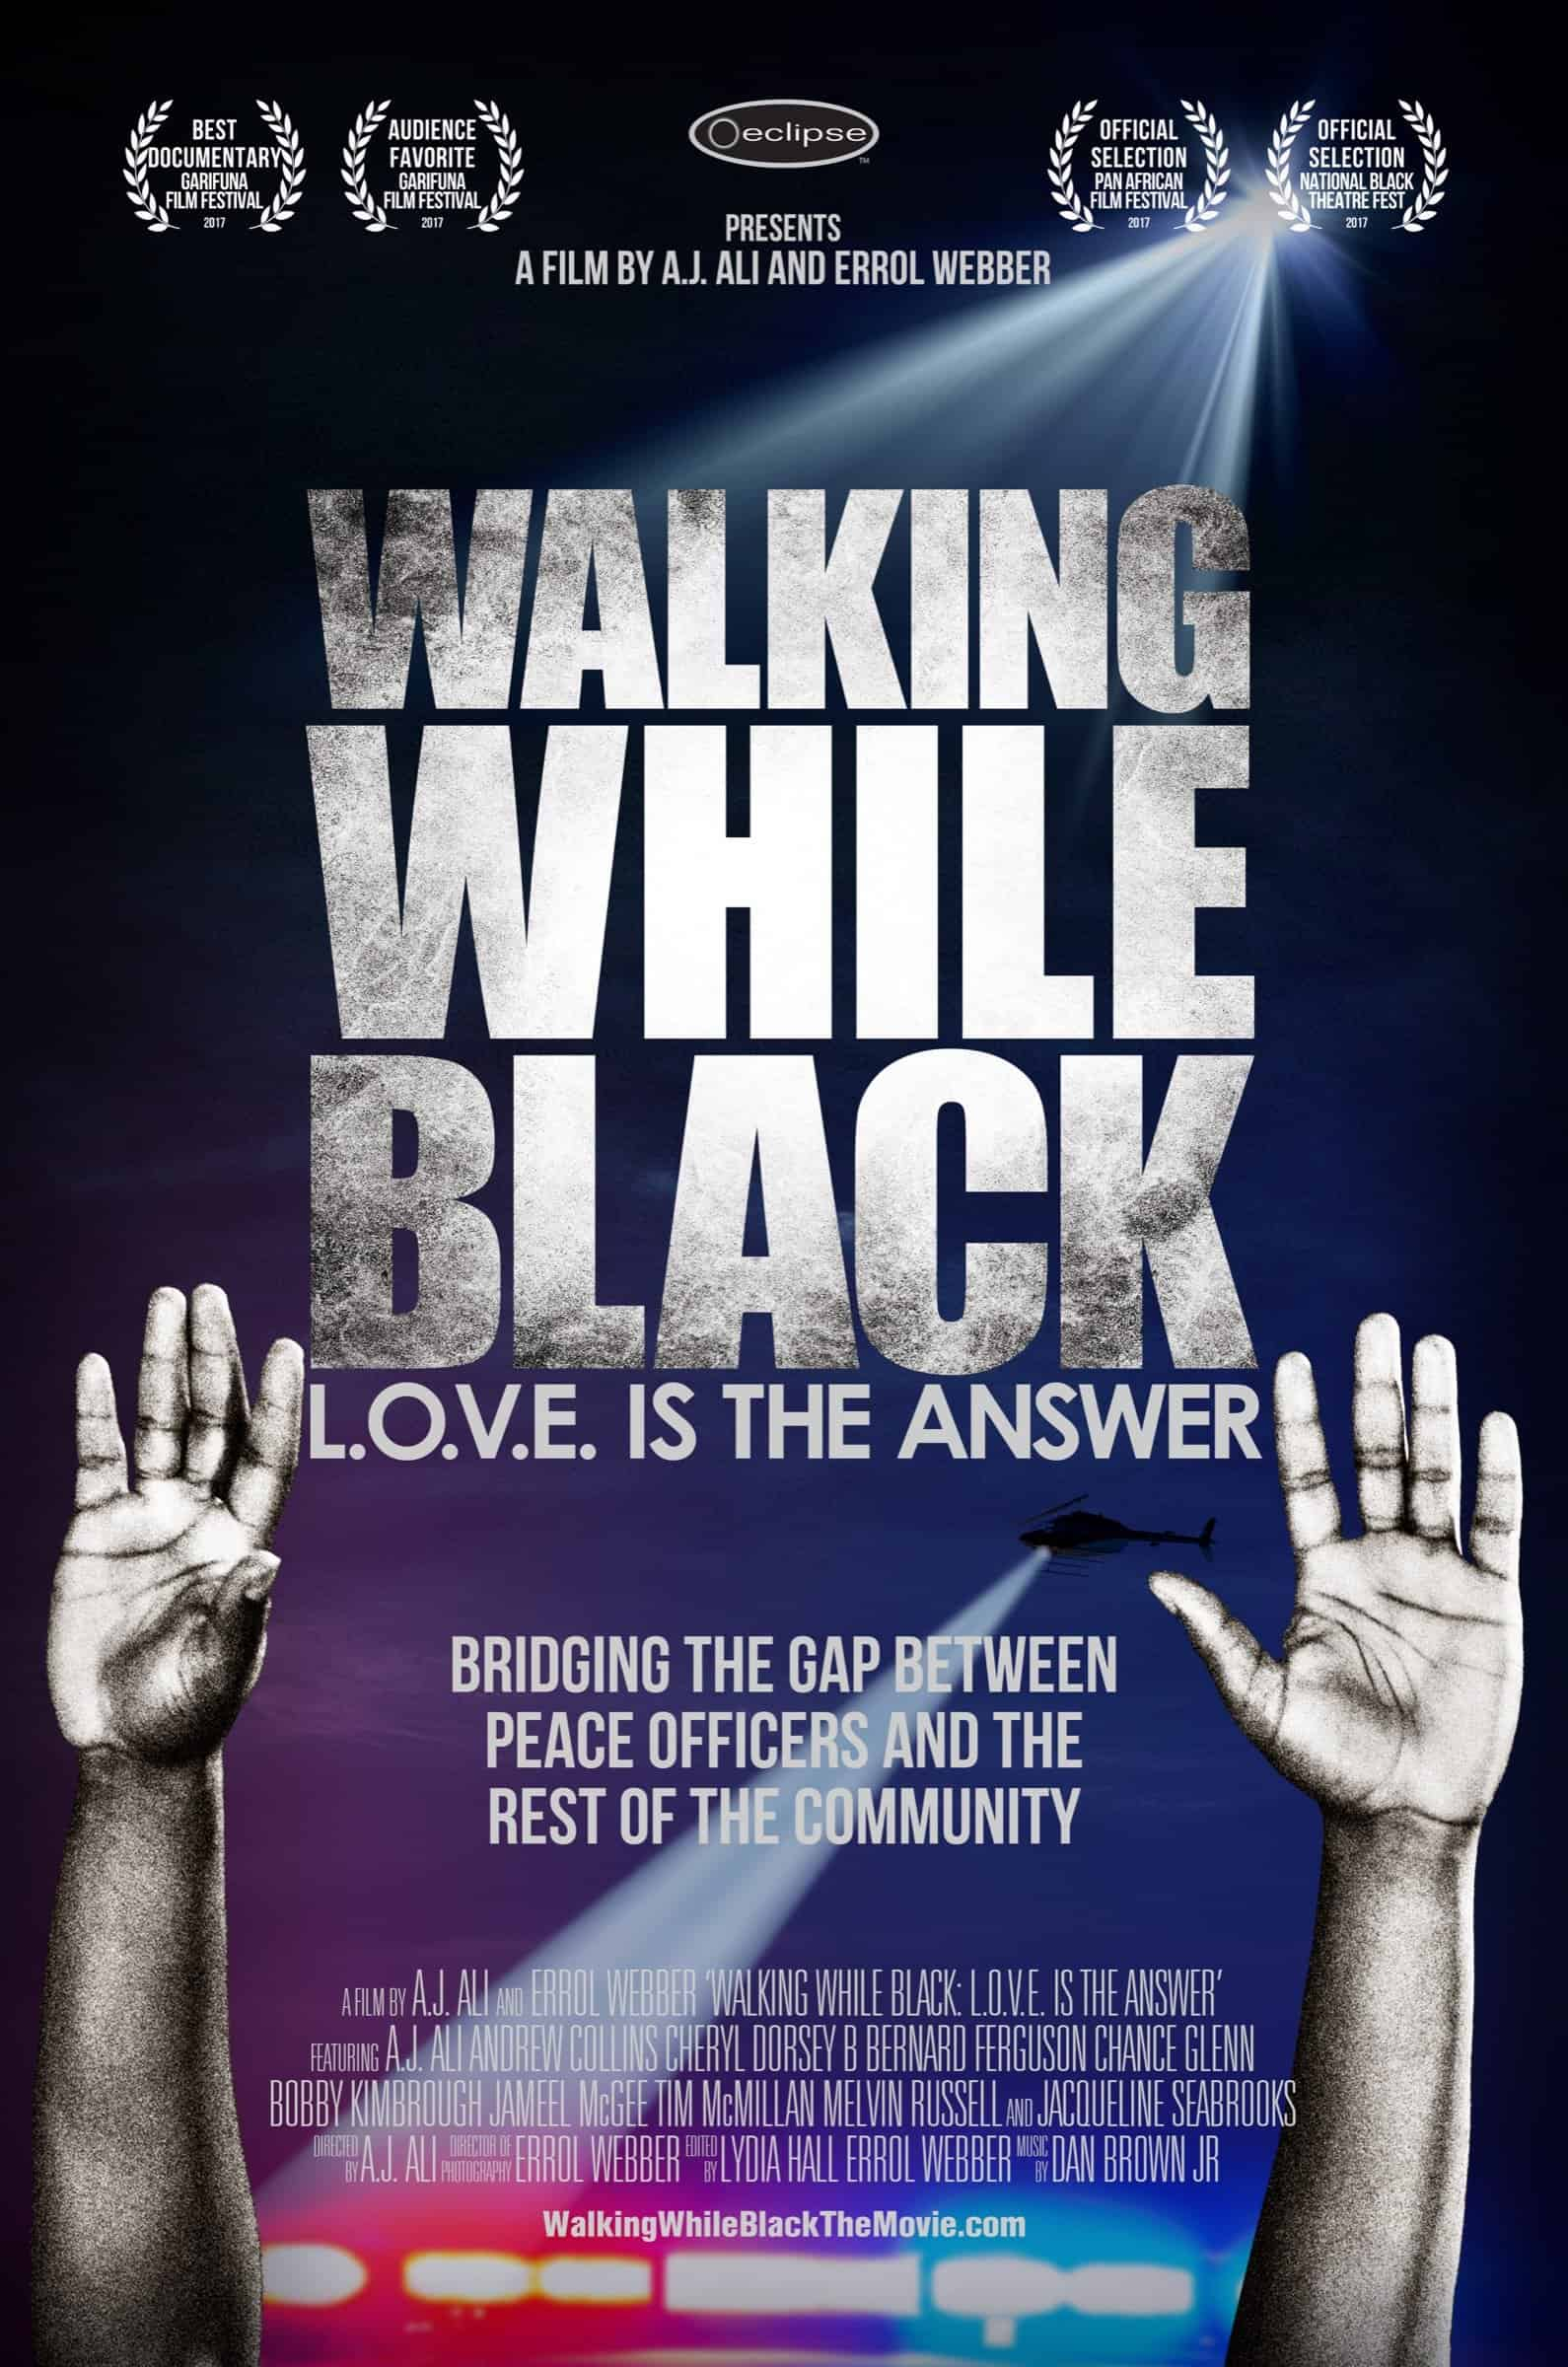 Walking While Black: L.O.V.E is the Answer